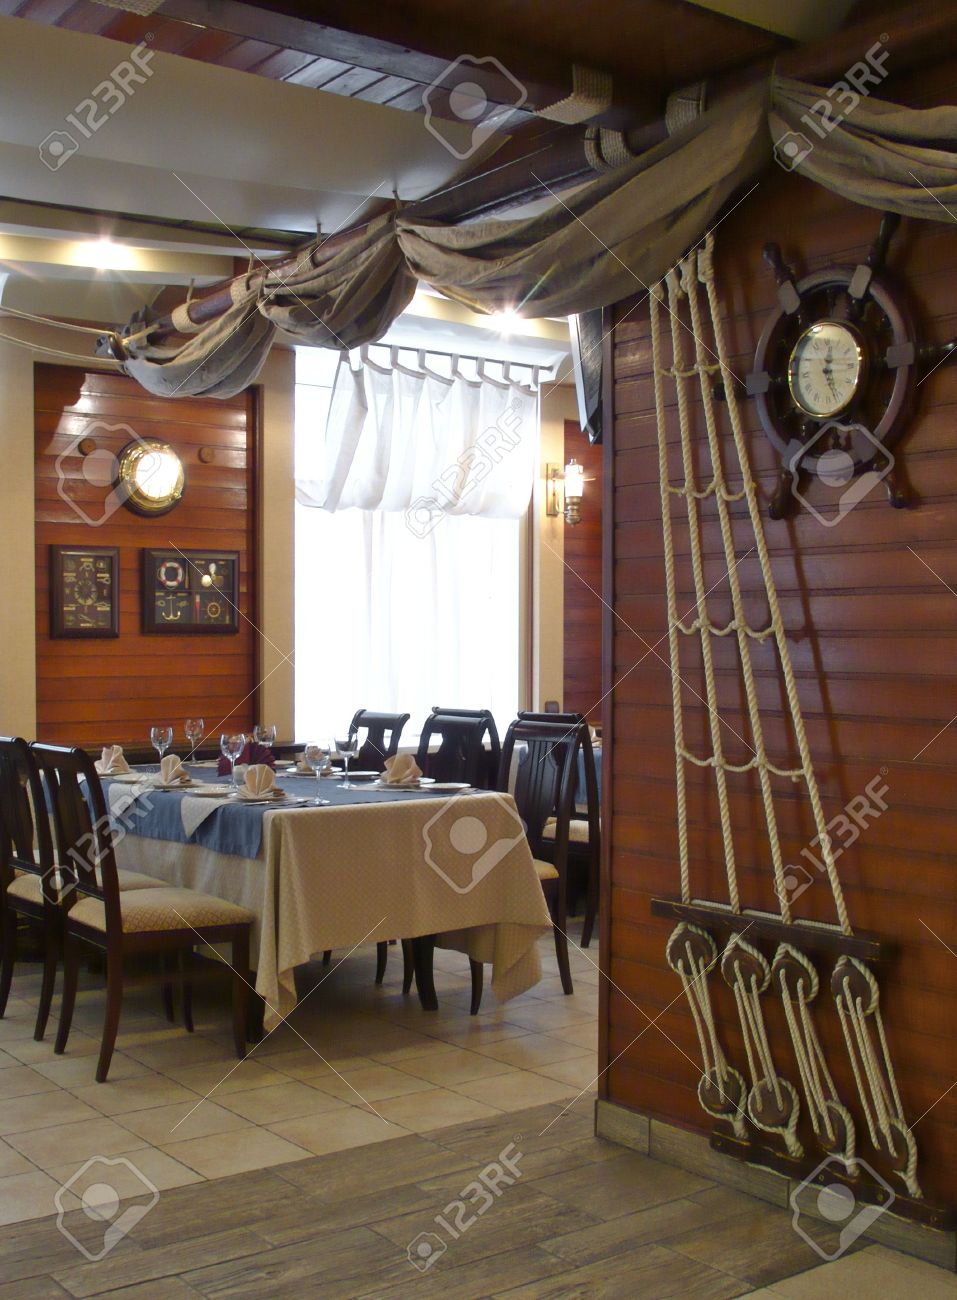 Interiors restaurant nautical style slogan tables ornaments from ropes on the walls